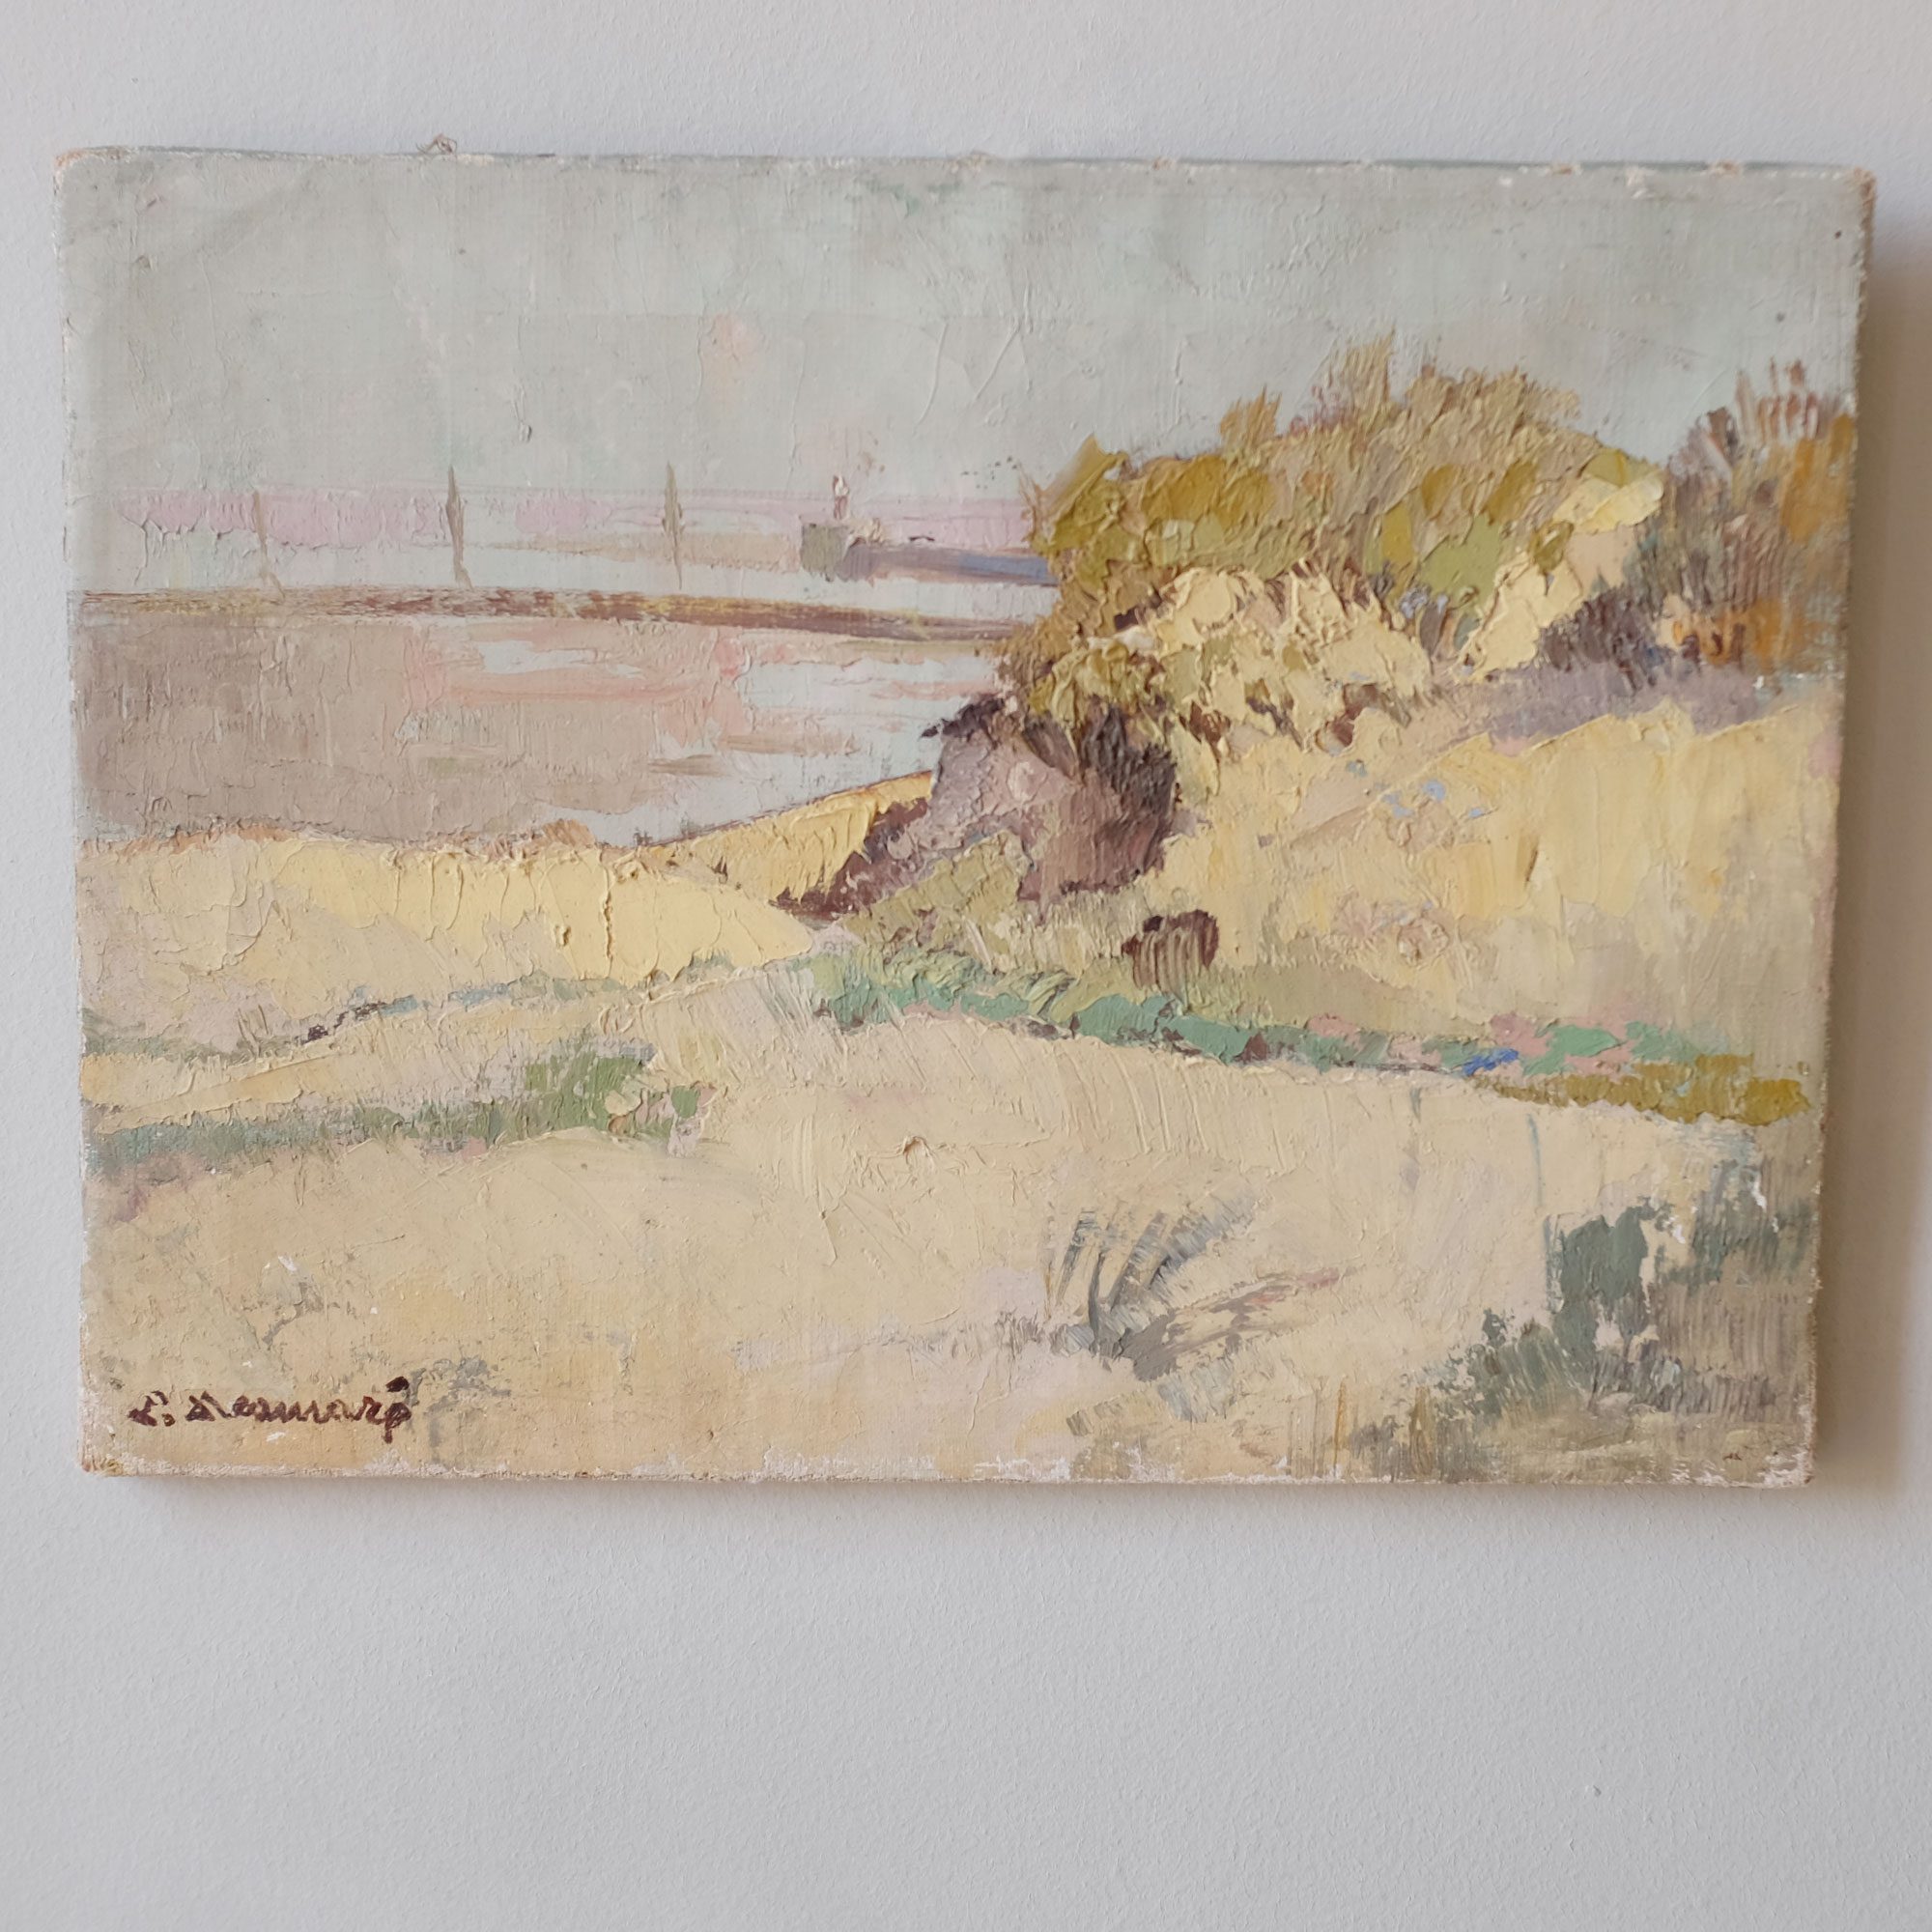 Vintage-Oil-Painting-of-Seaside-Landscape-iv